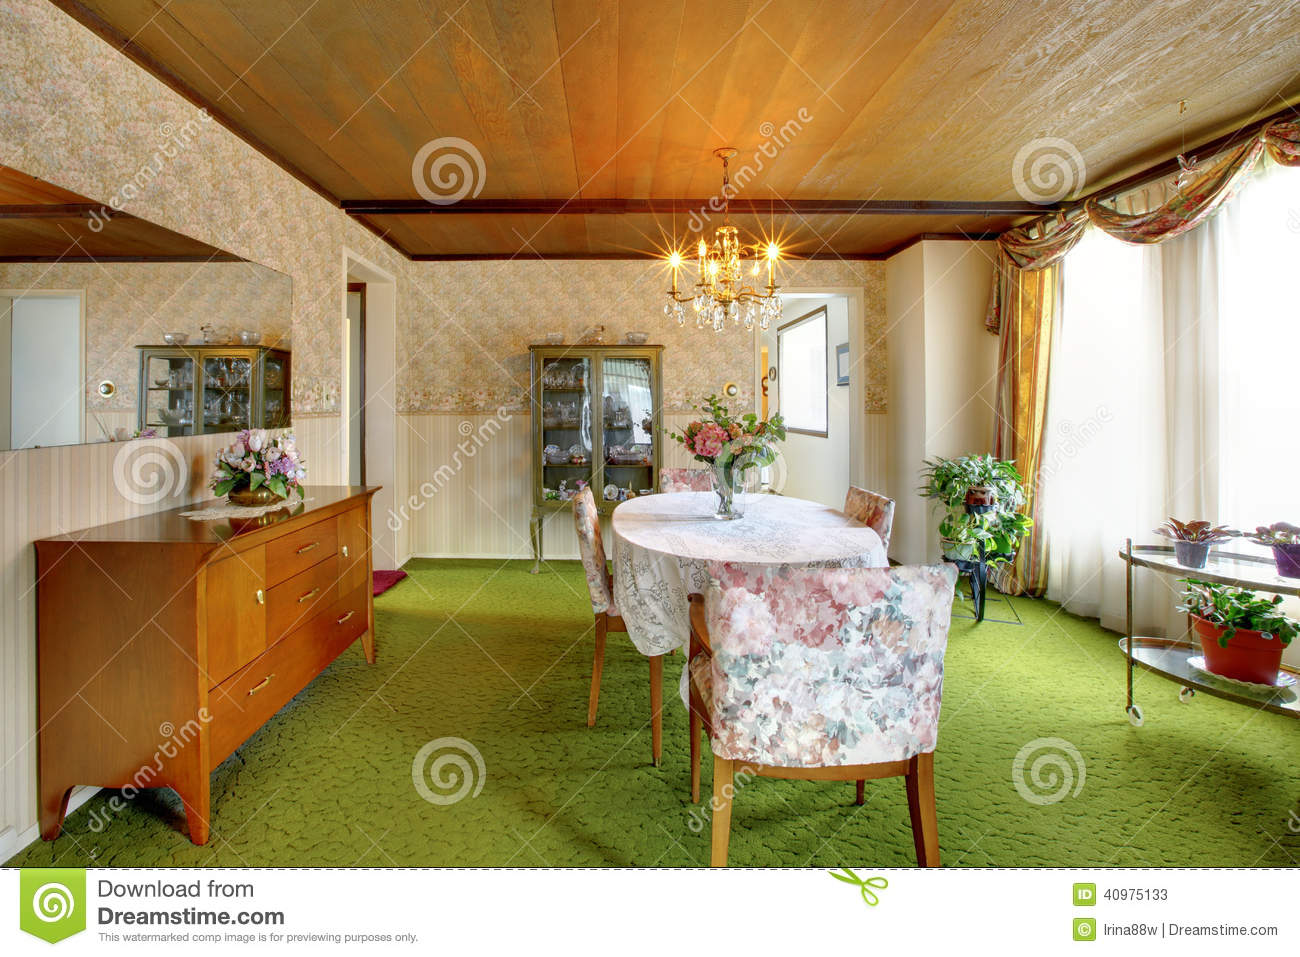 Old fashioned house interior with antique cabinets, green carpet floor